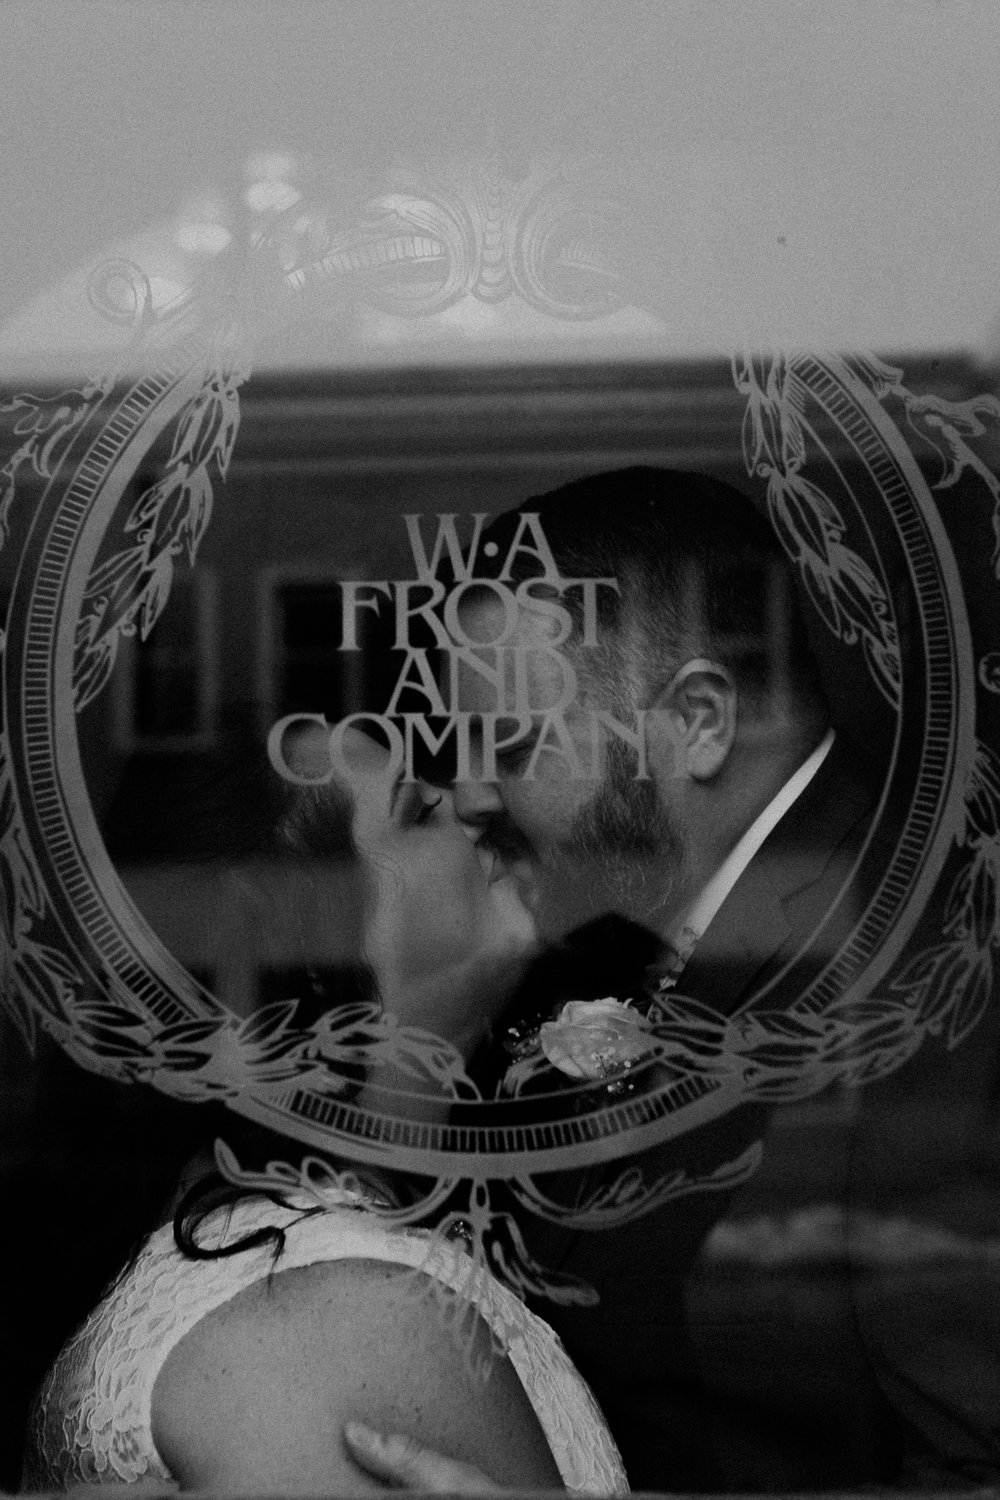 A black and white photo of a married couple kissing at W.A. Frost in the window